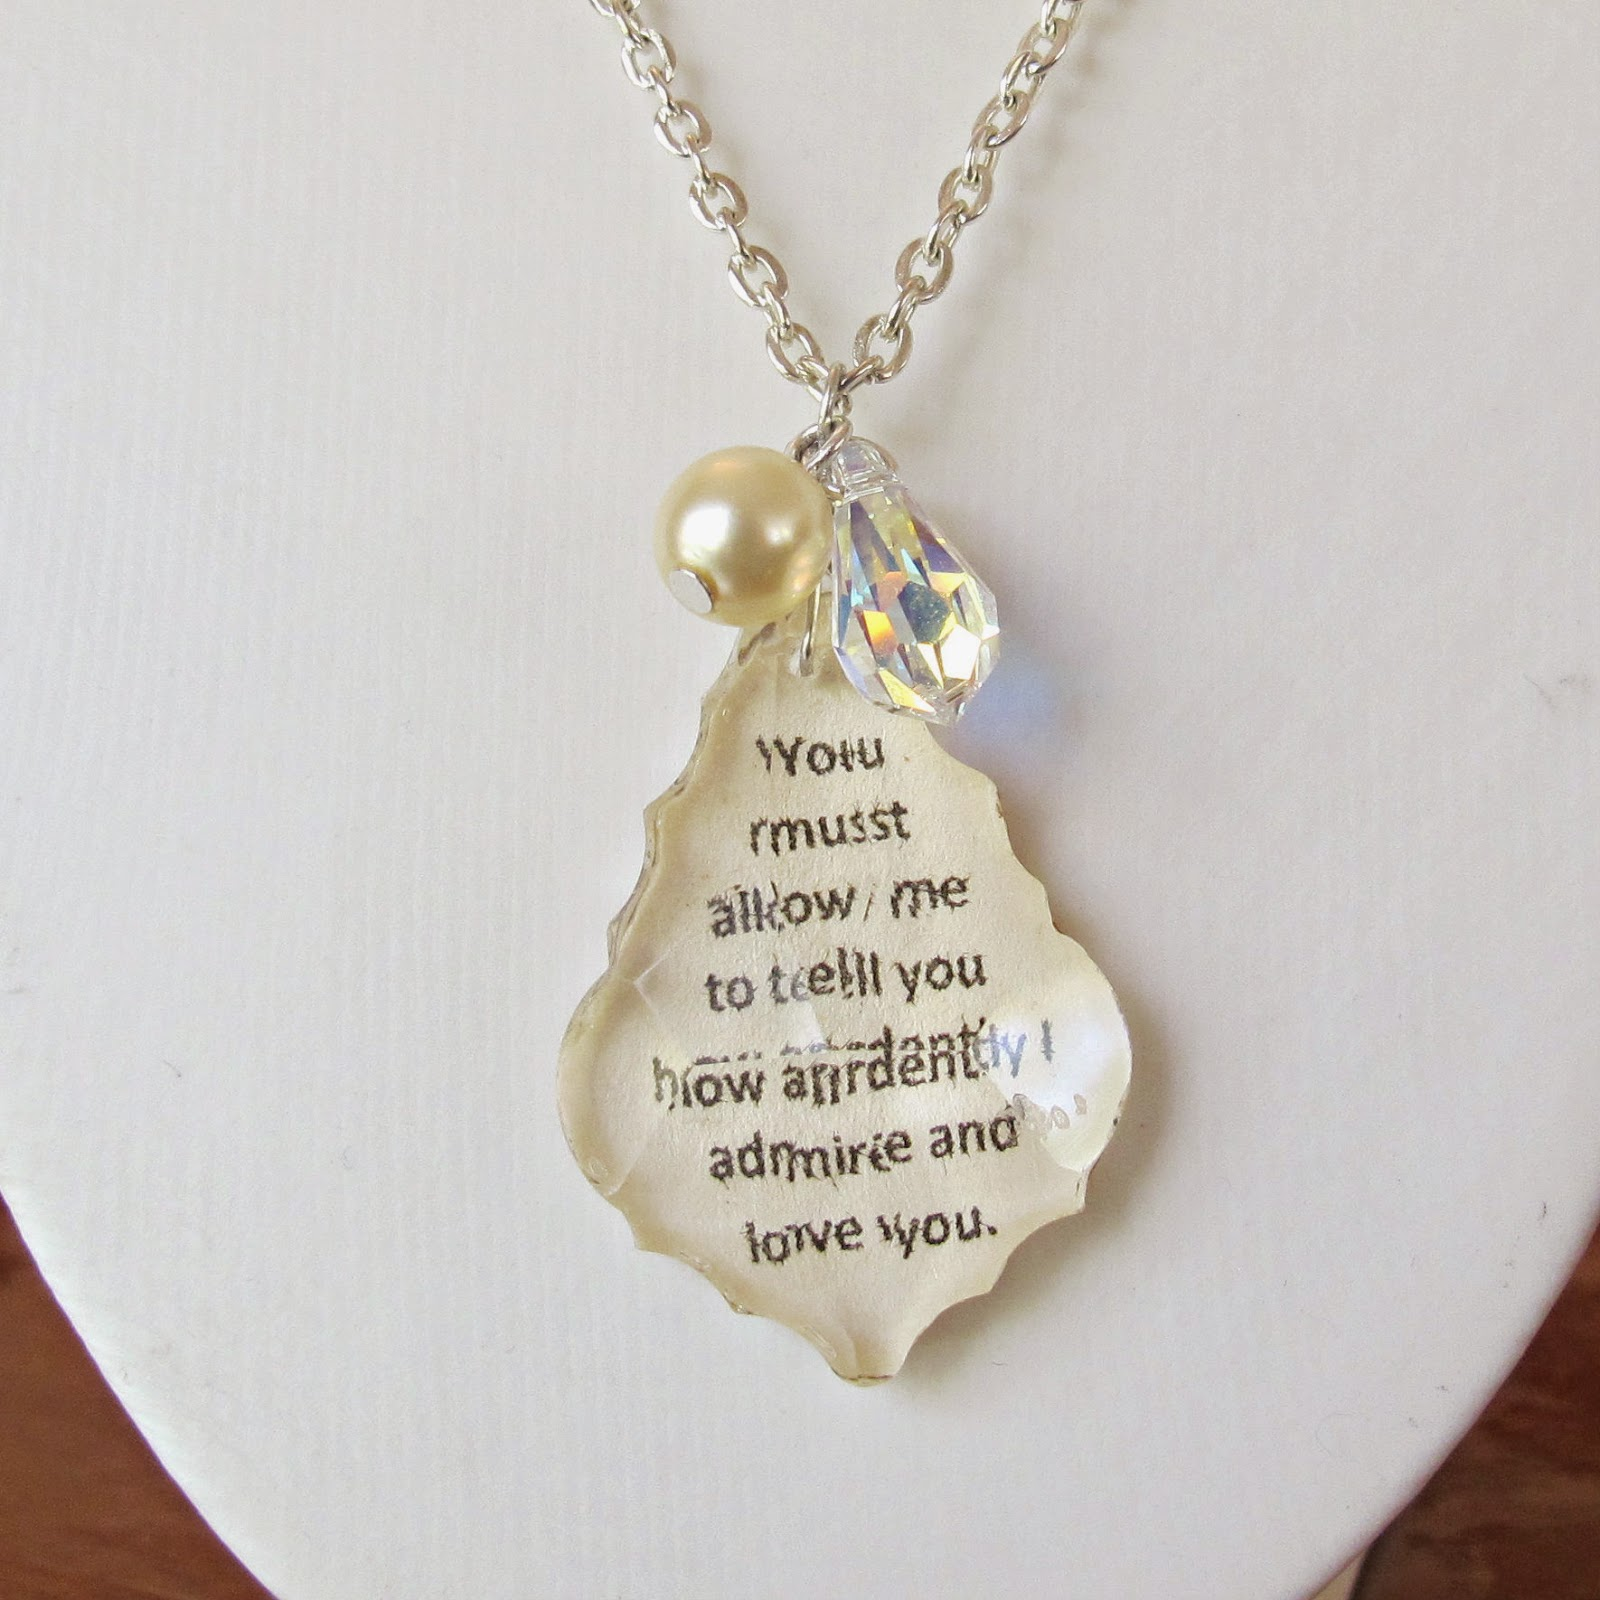 image mr darcy pendant necklace pride and prejudice proposal jane austen you must allow me to tell you how ardently i admire and love you swarovski crystal two cheeky monkeys wedding bridal jewellery